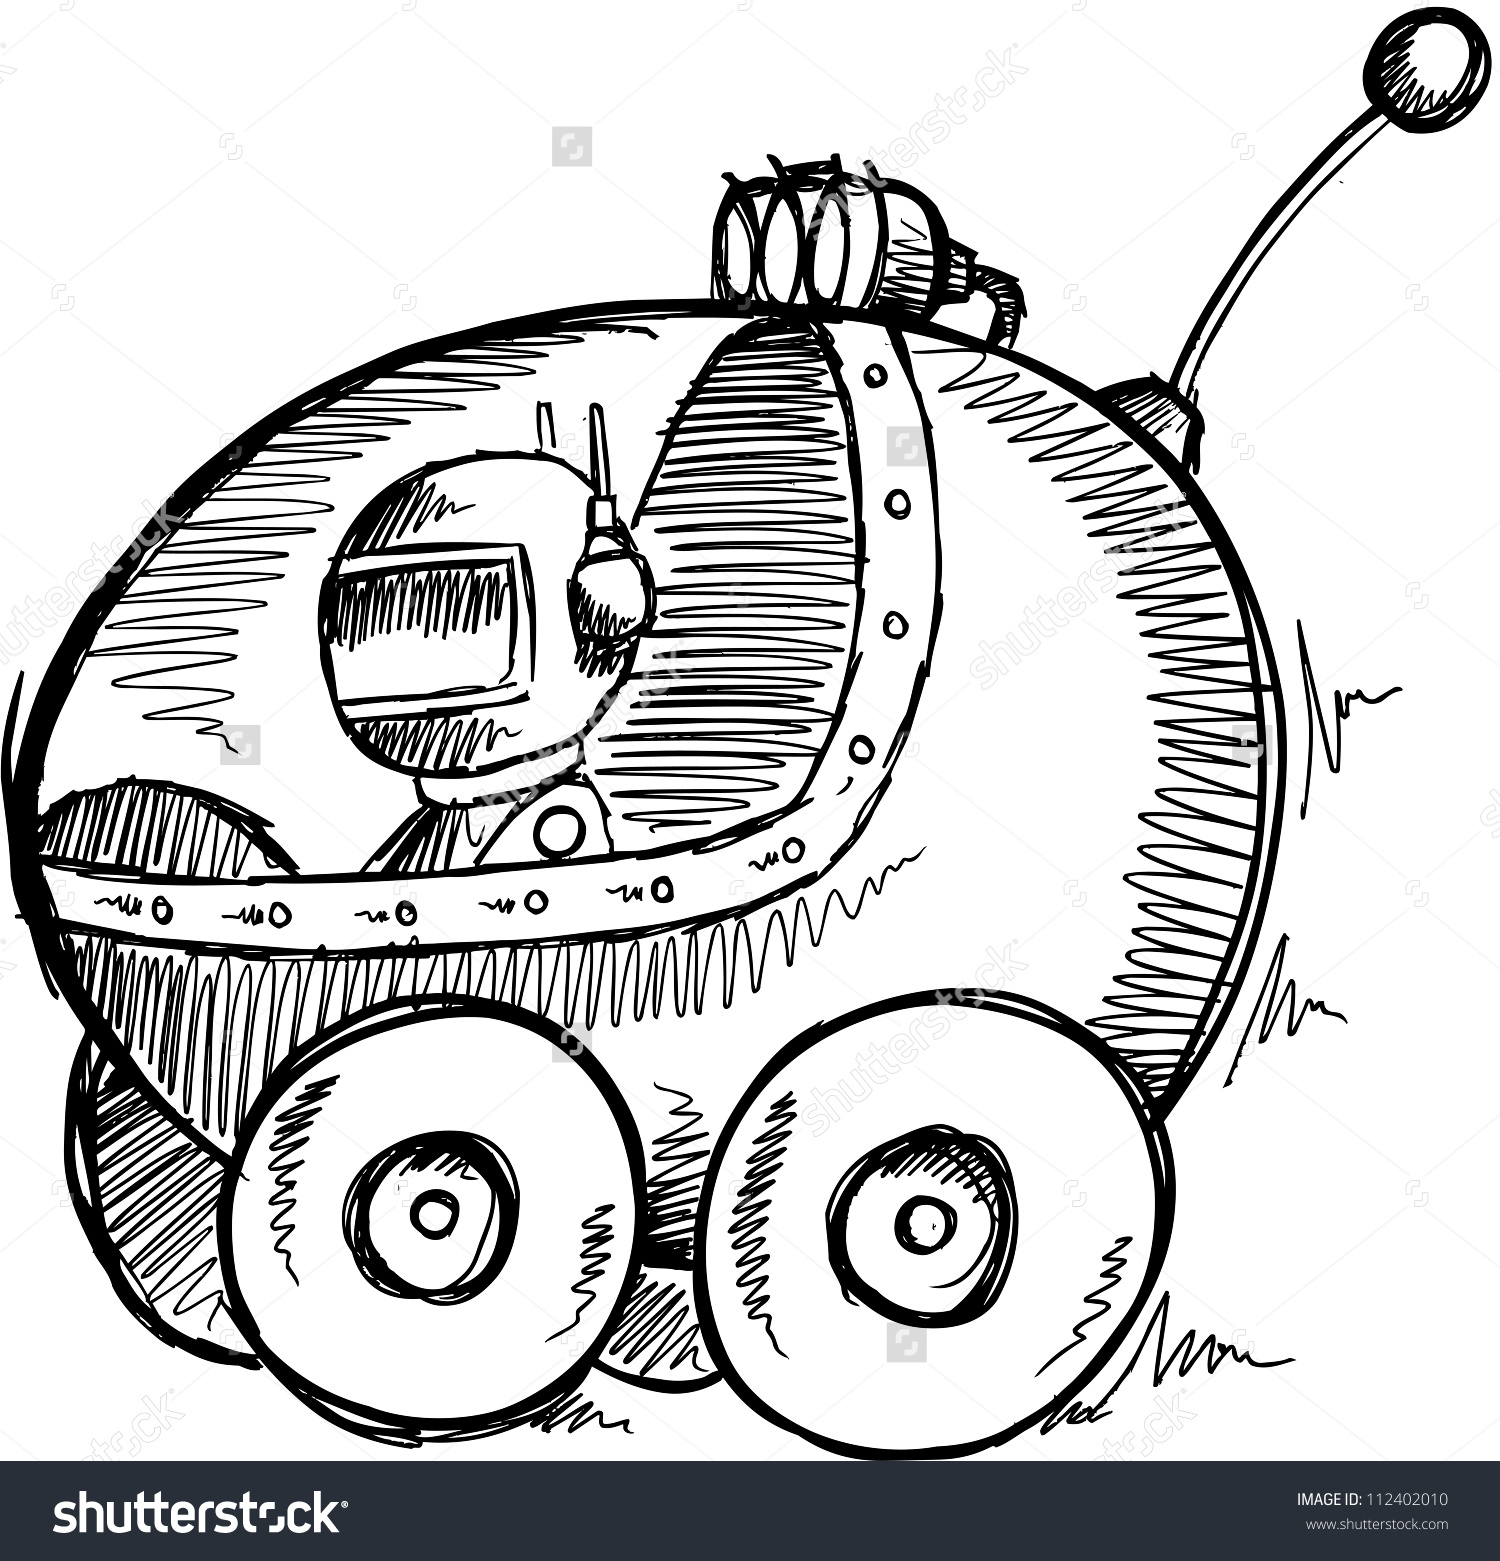 Sketch Doodle Outer Space Moon Buggy Stock Vector 112402010.